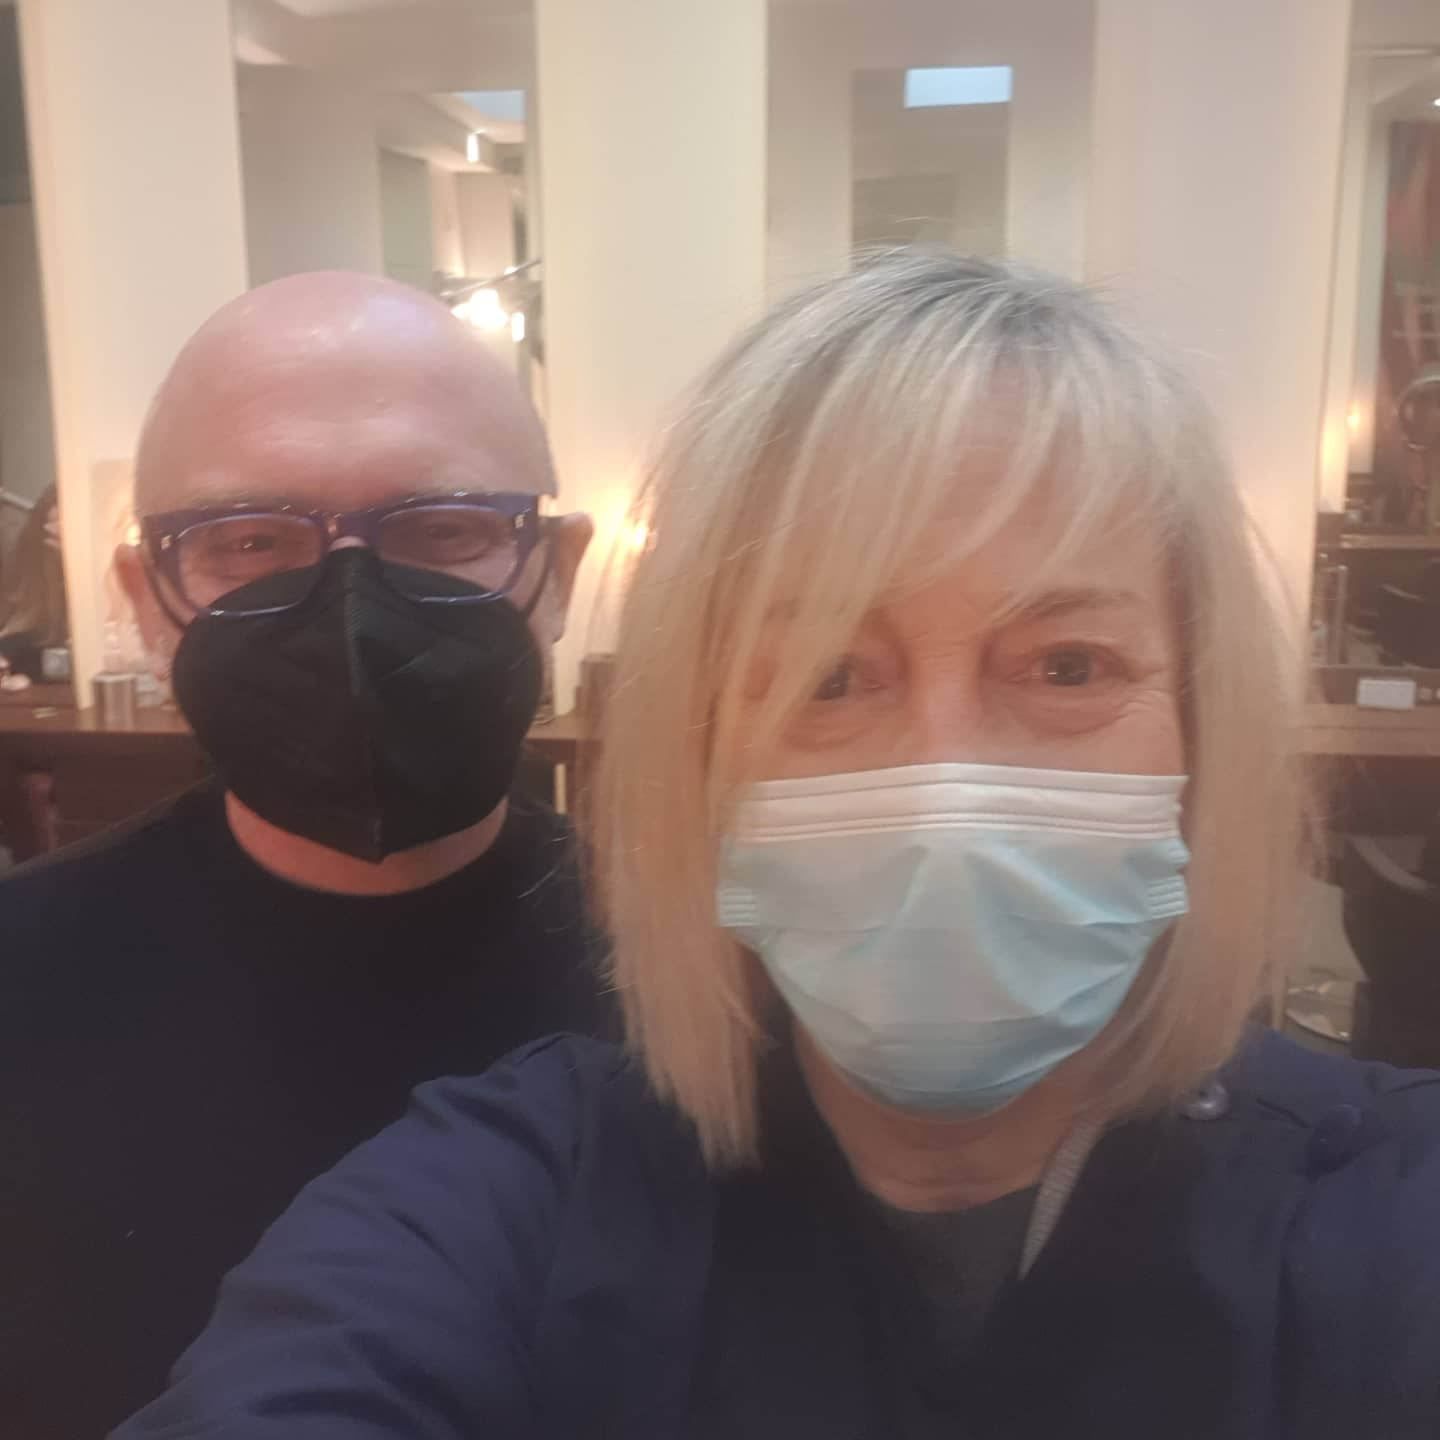 Who is behind the mask?  . All gowned and masked up and at last my new 2021 haircut. . With the talented @darrenfowlerhair London whom I recommend all my 1-2-1 personal makeover and clients to go to.  He's great with all sorts of hair - fine, thin, curly, thick etc and also understanding the needs of the very diverse clients I send him. . . .